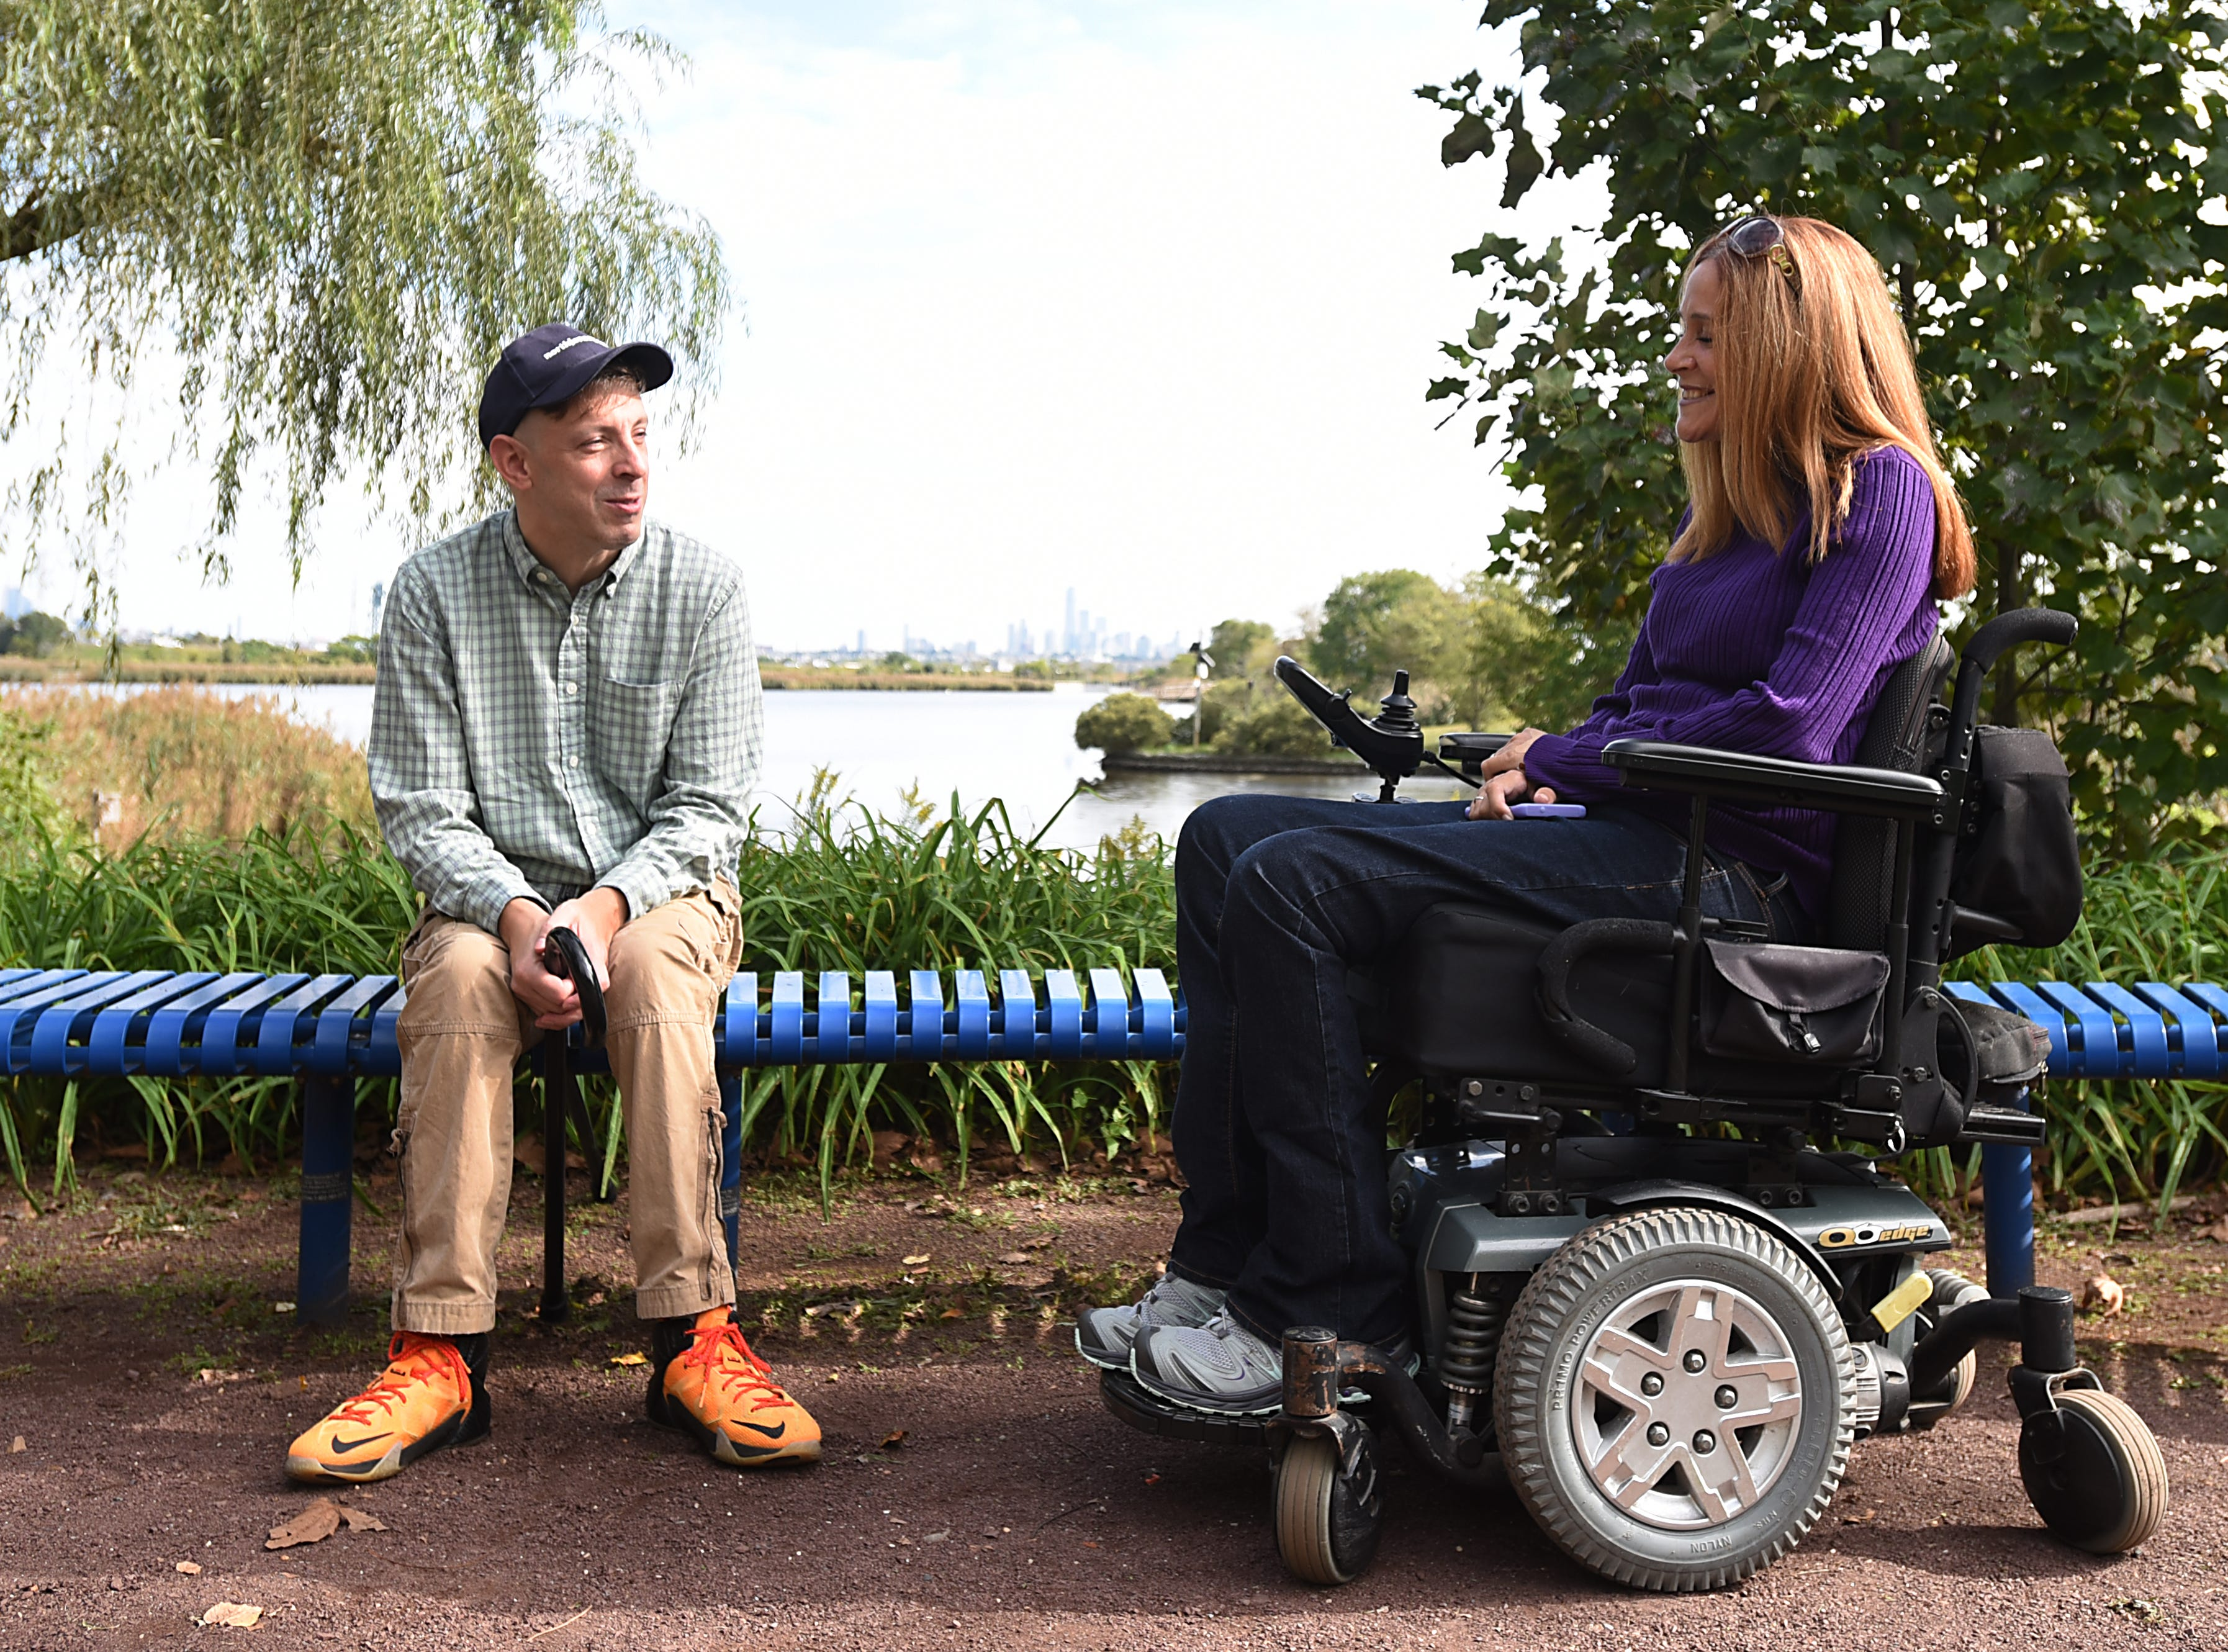 Gene Myers, reporter with NorthJersey.com and Michele Daly, Director of Disability Education at Meadowlands Environment Center and Ramapo College, pose for photos at DeKorte Park. New Jersey's hiking options for those with limited mobility, includes DeKorte Park and its accessible trails in Lyndhurst shown on Friday October 5, 2018.